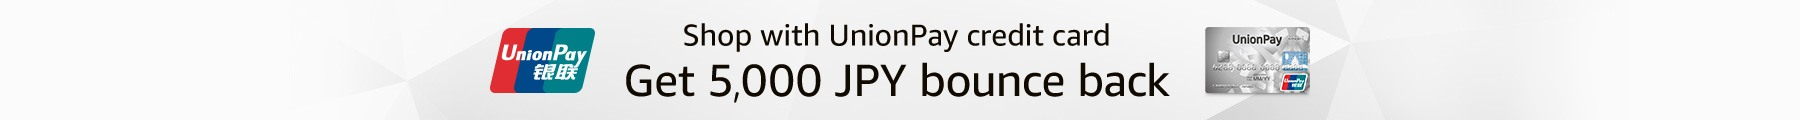 Shop with UnionPay credit card Get 5,000 JPY bounce back